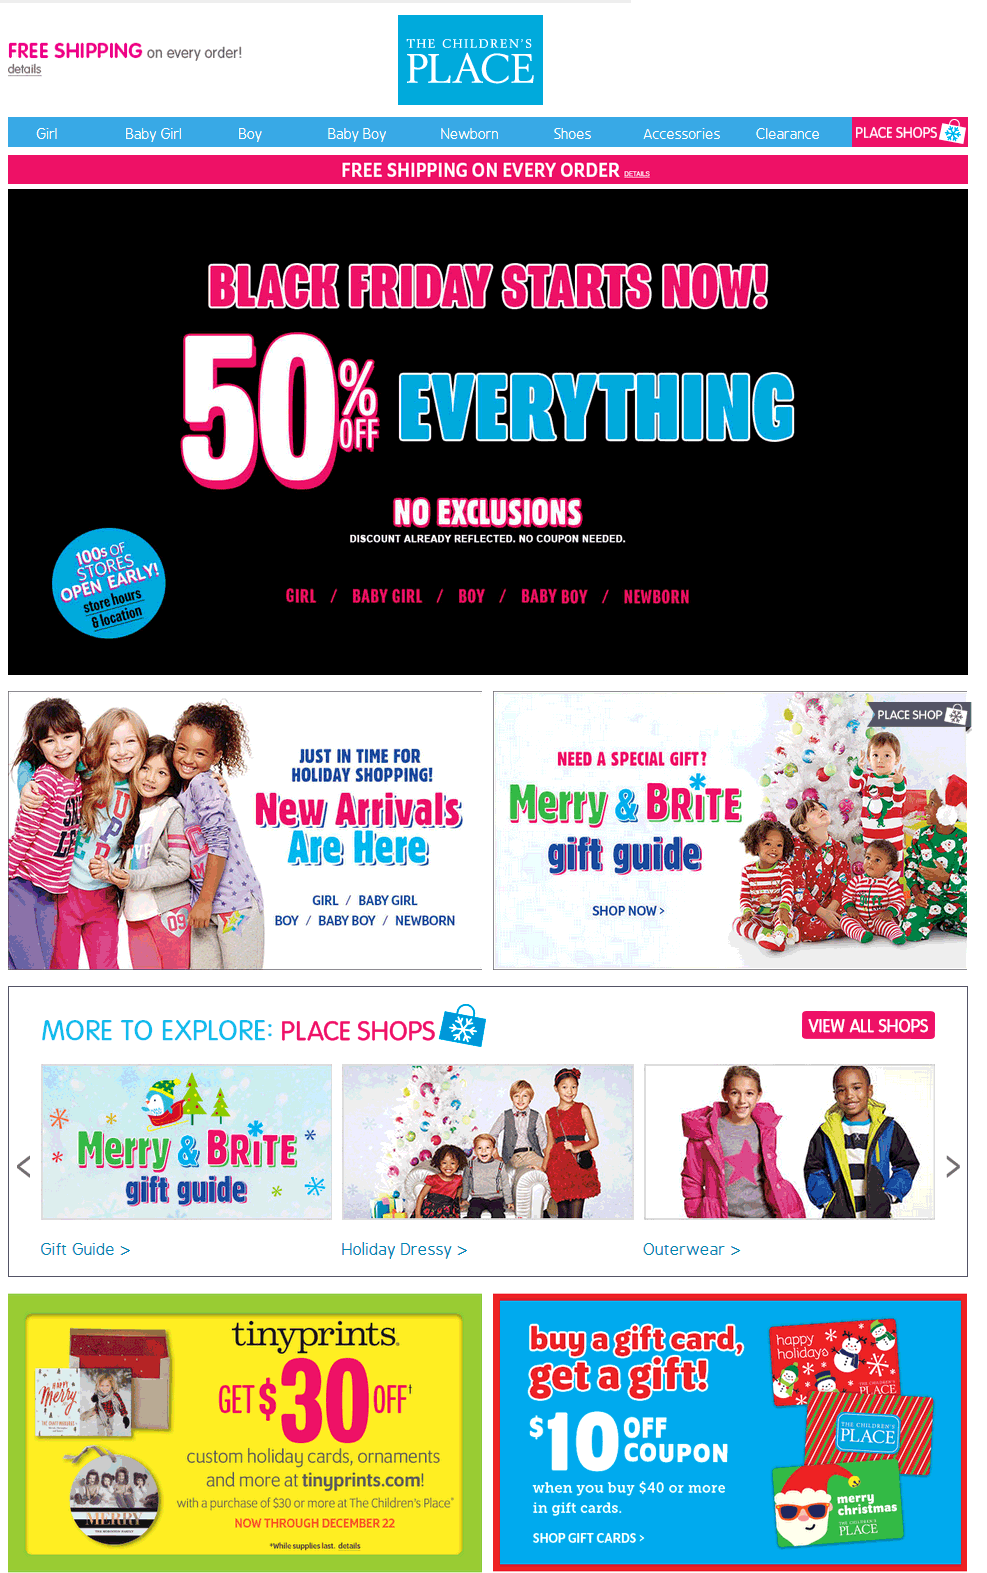 The Childrens Place Coupon March 2017 Everything is 50% off at The Childrens Place, ditto online